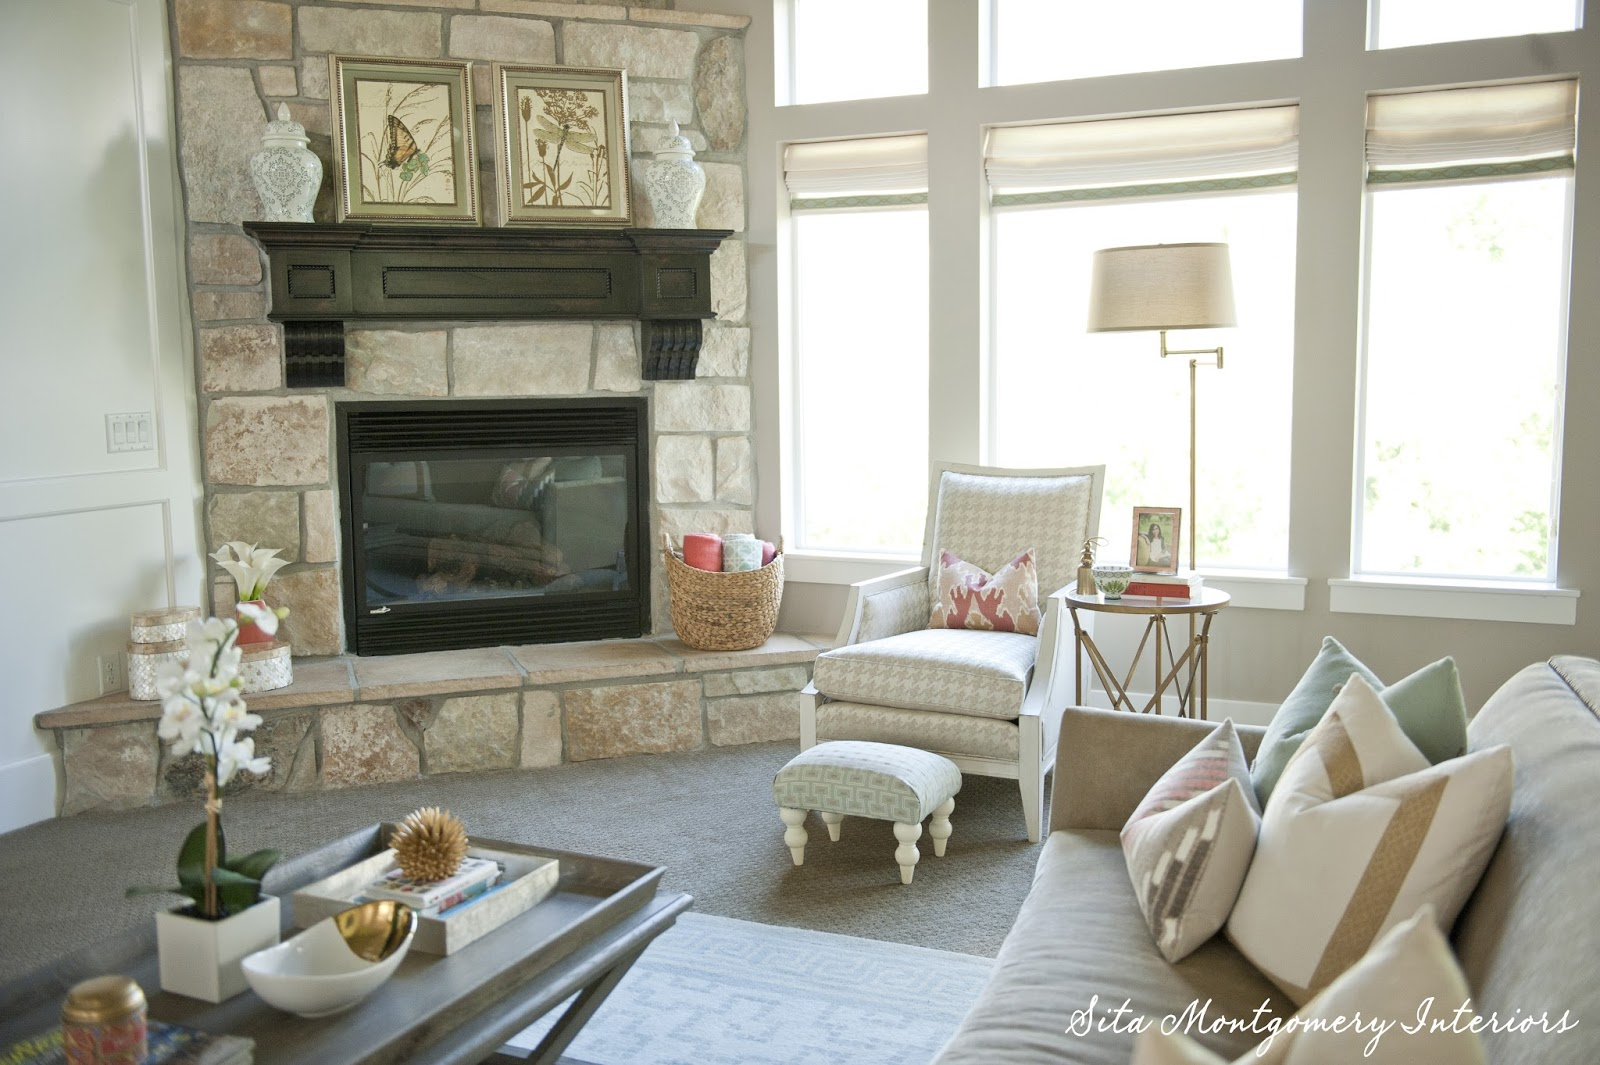 my home sita montgomery interiors we made many changes to our home in 2015 a full updated home tour coming soon